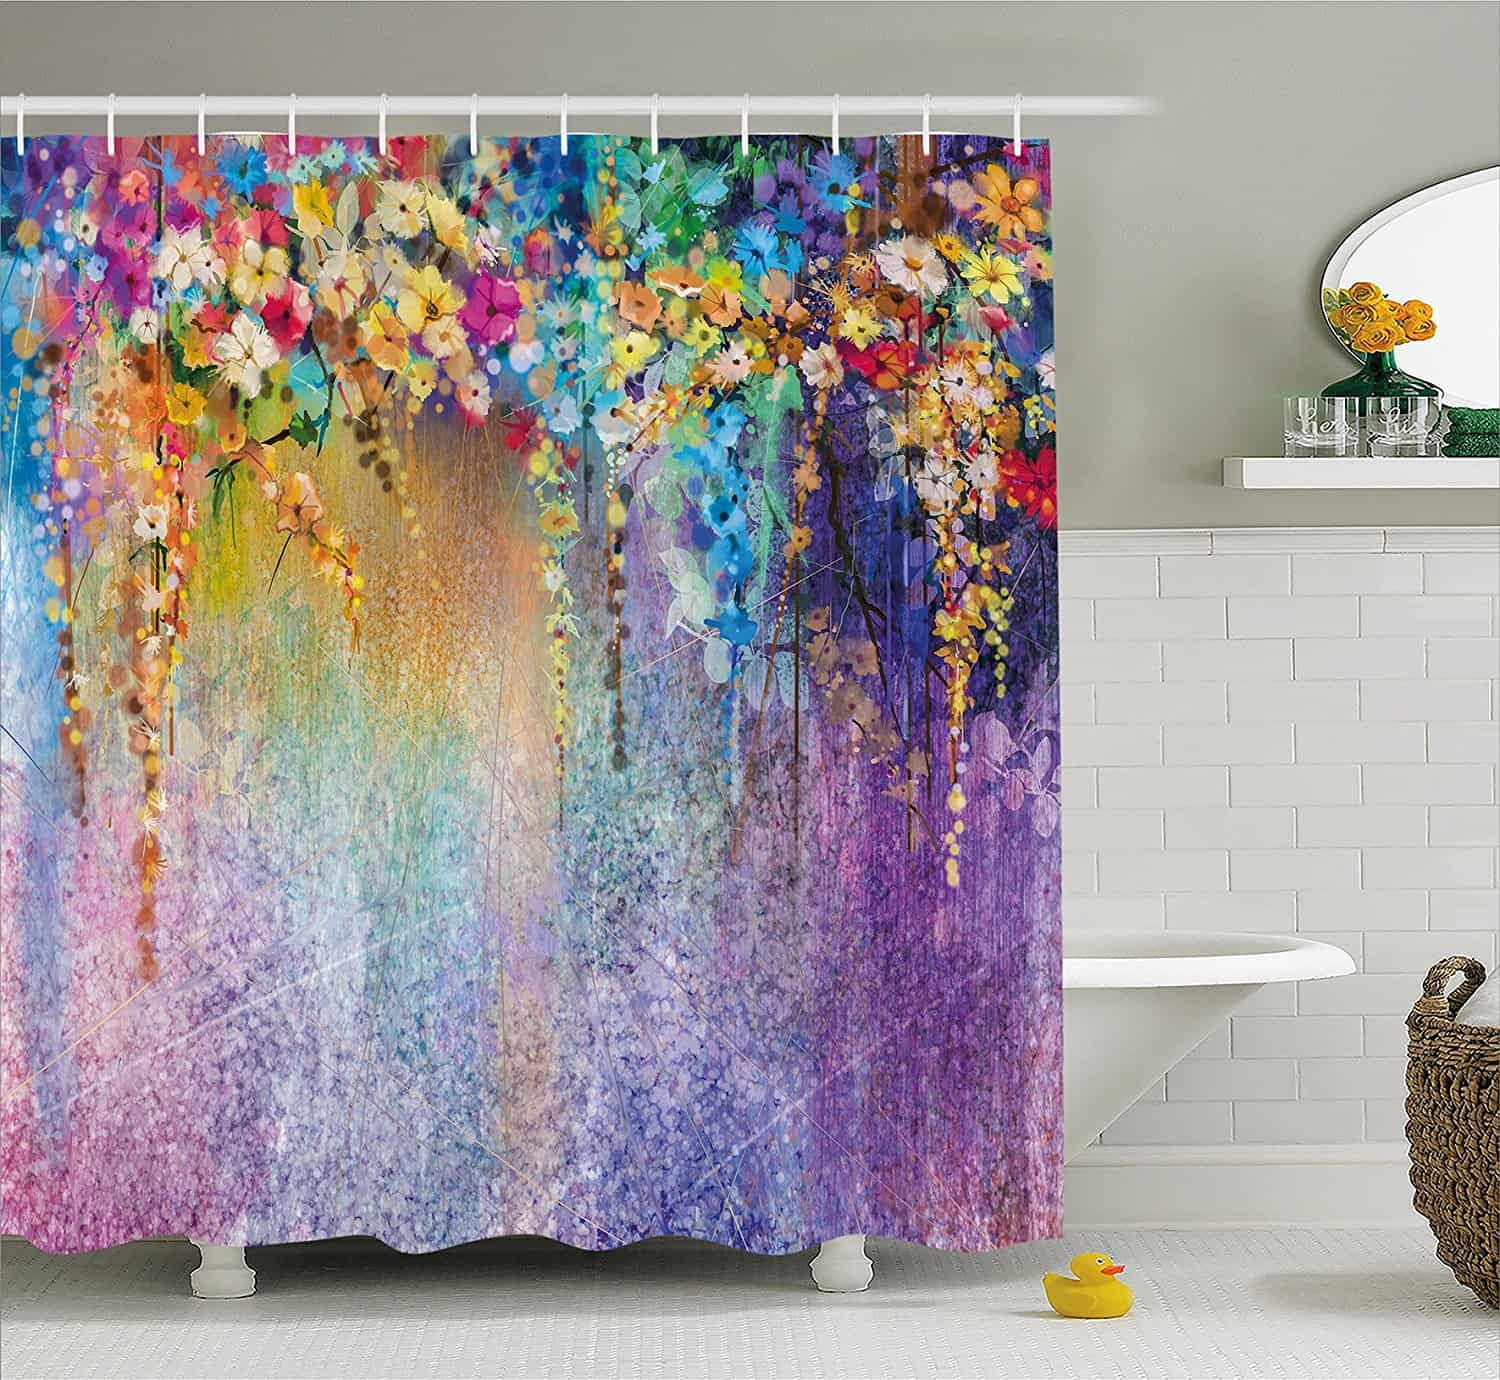 25 Cool Shower Curtains For Your Bathroom Makeover